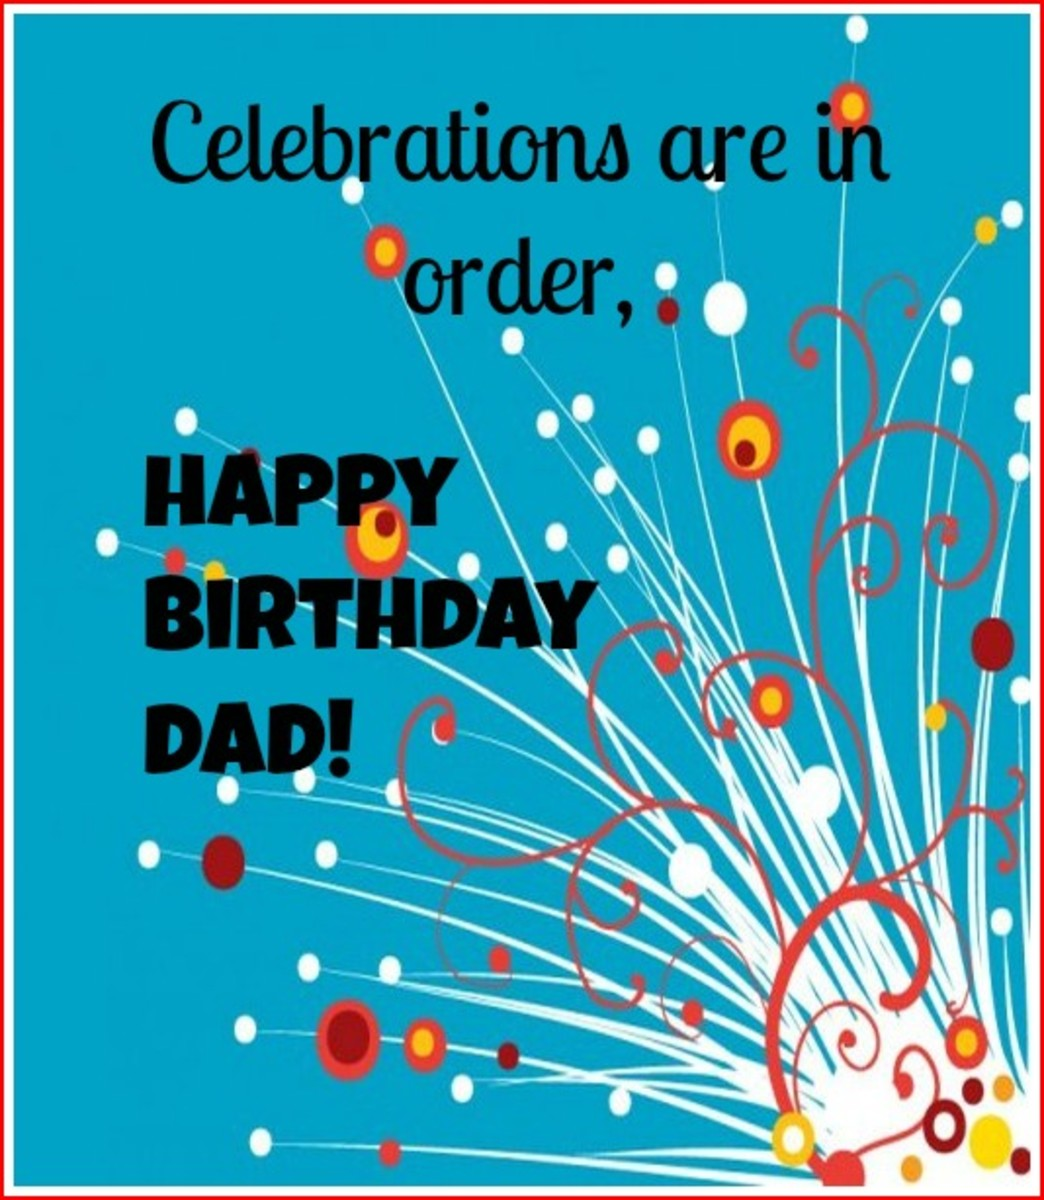 Email Birthday Message for Dad